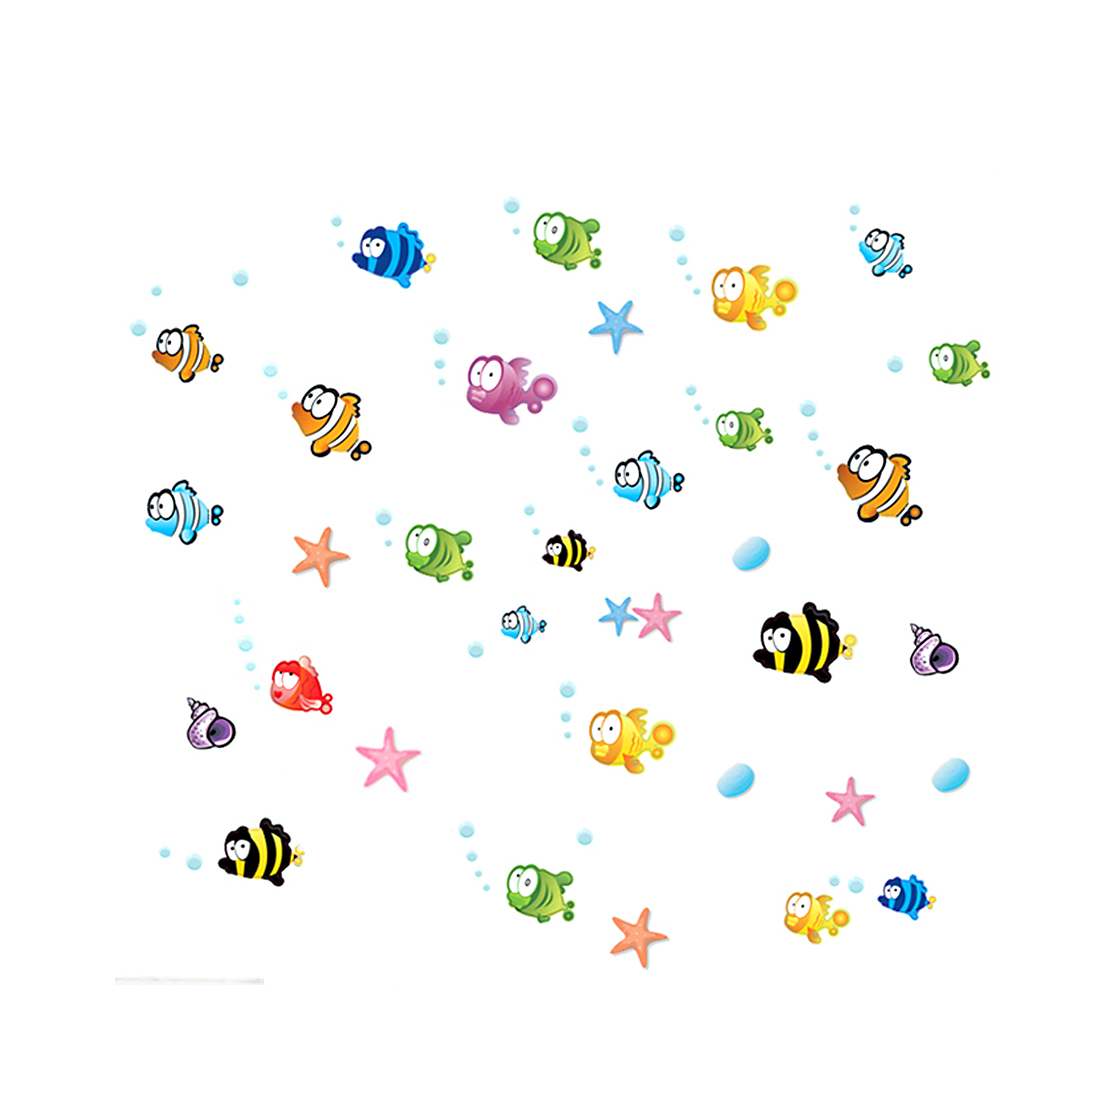 Home Room Fish Star Bubble Design Removable Wall Sticker Art Decal